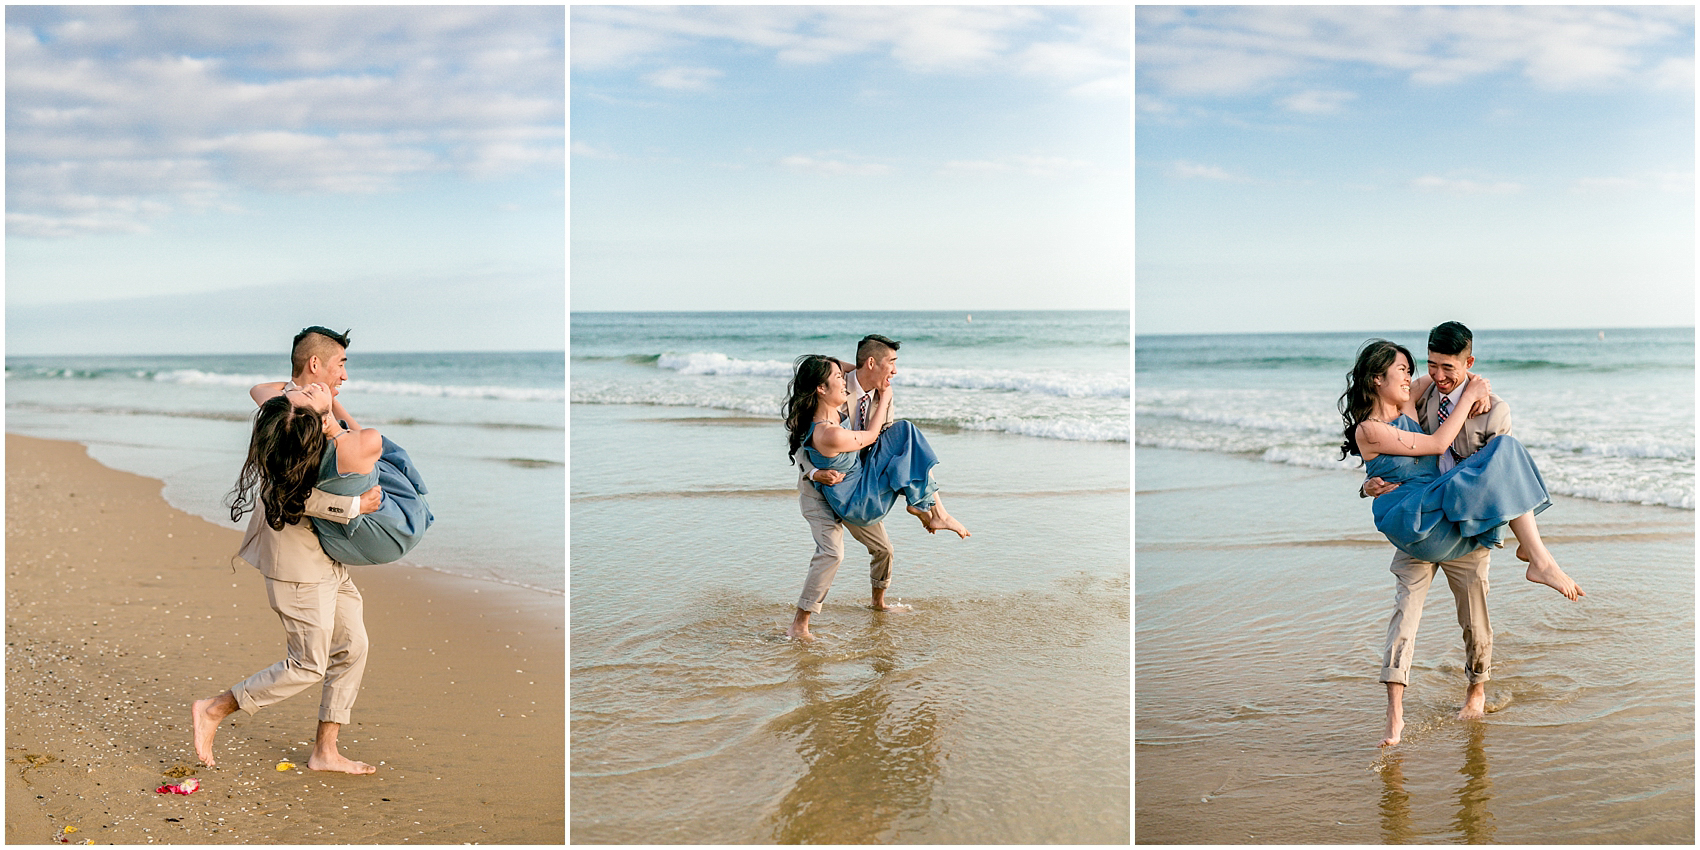 Newport Beach Engagement Photography Smetona Photo Bonnie Tim-0009.jpg